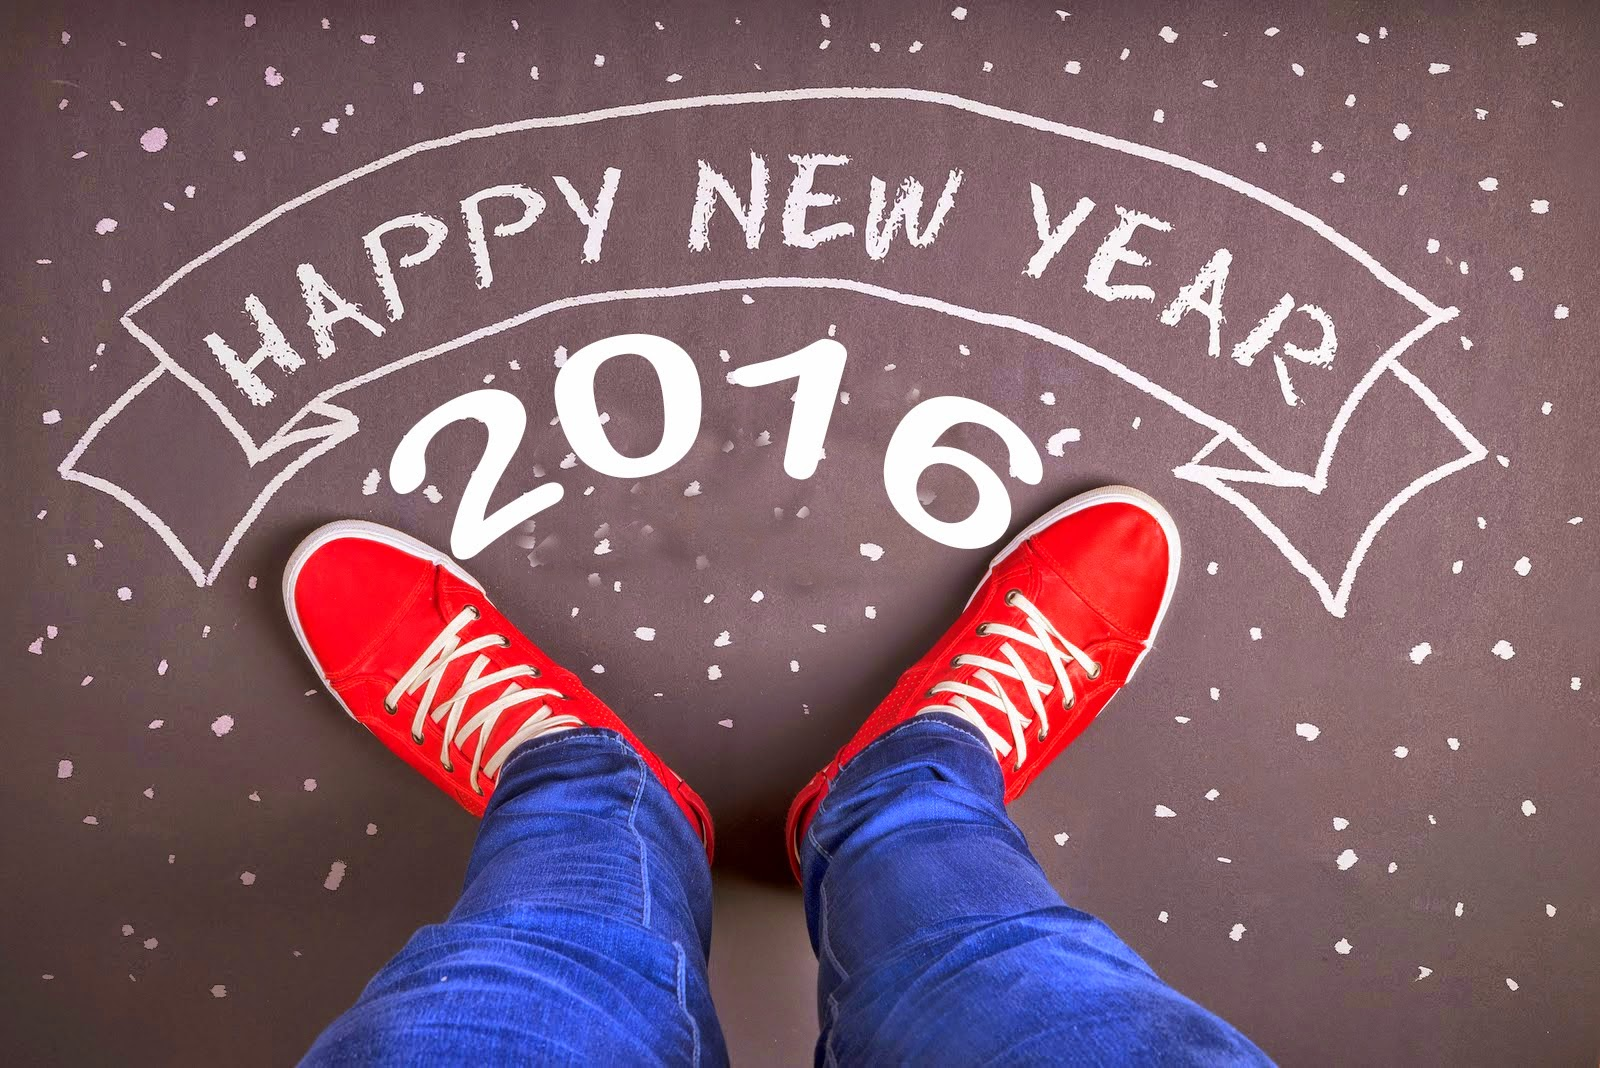 Happy New Year 2016 3d Images And Wallpapers Best Wallpaper